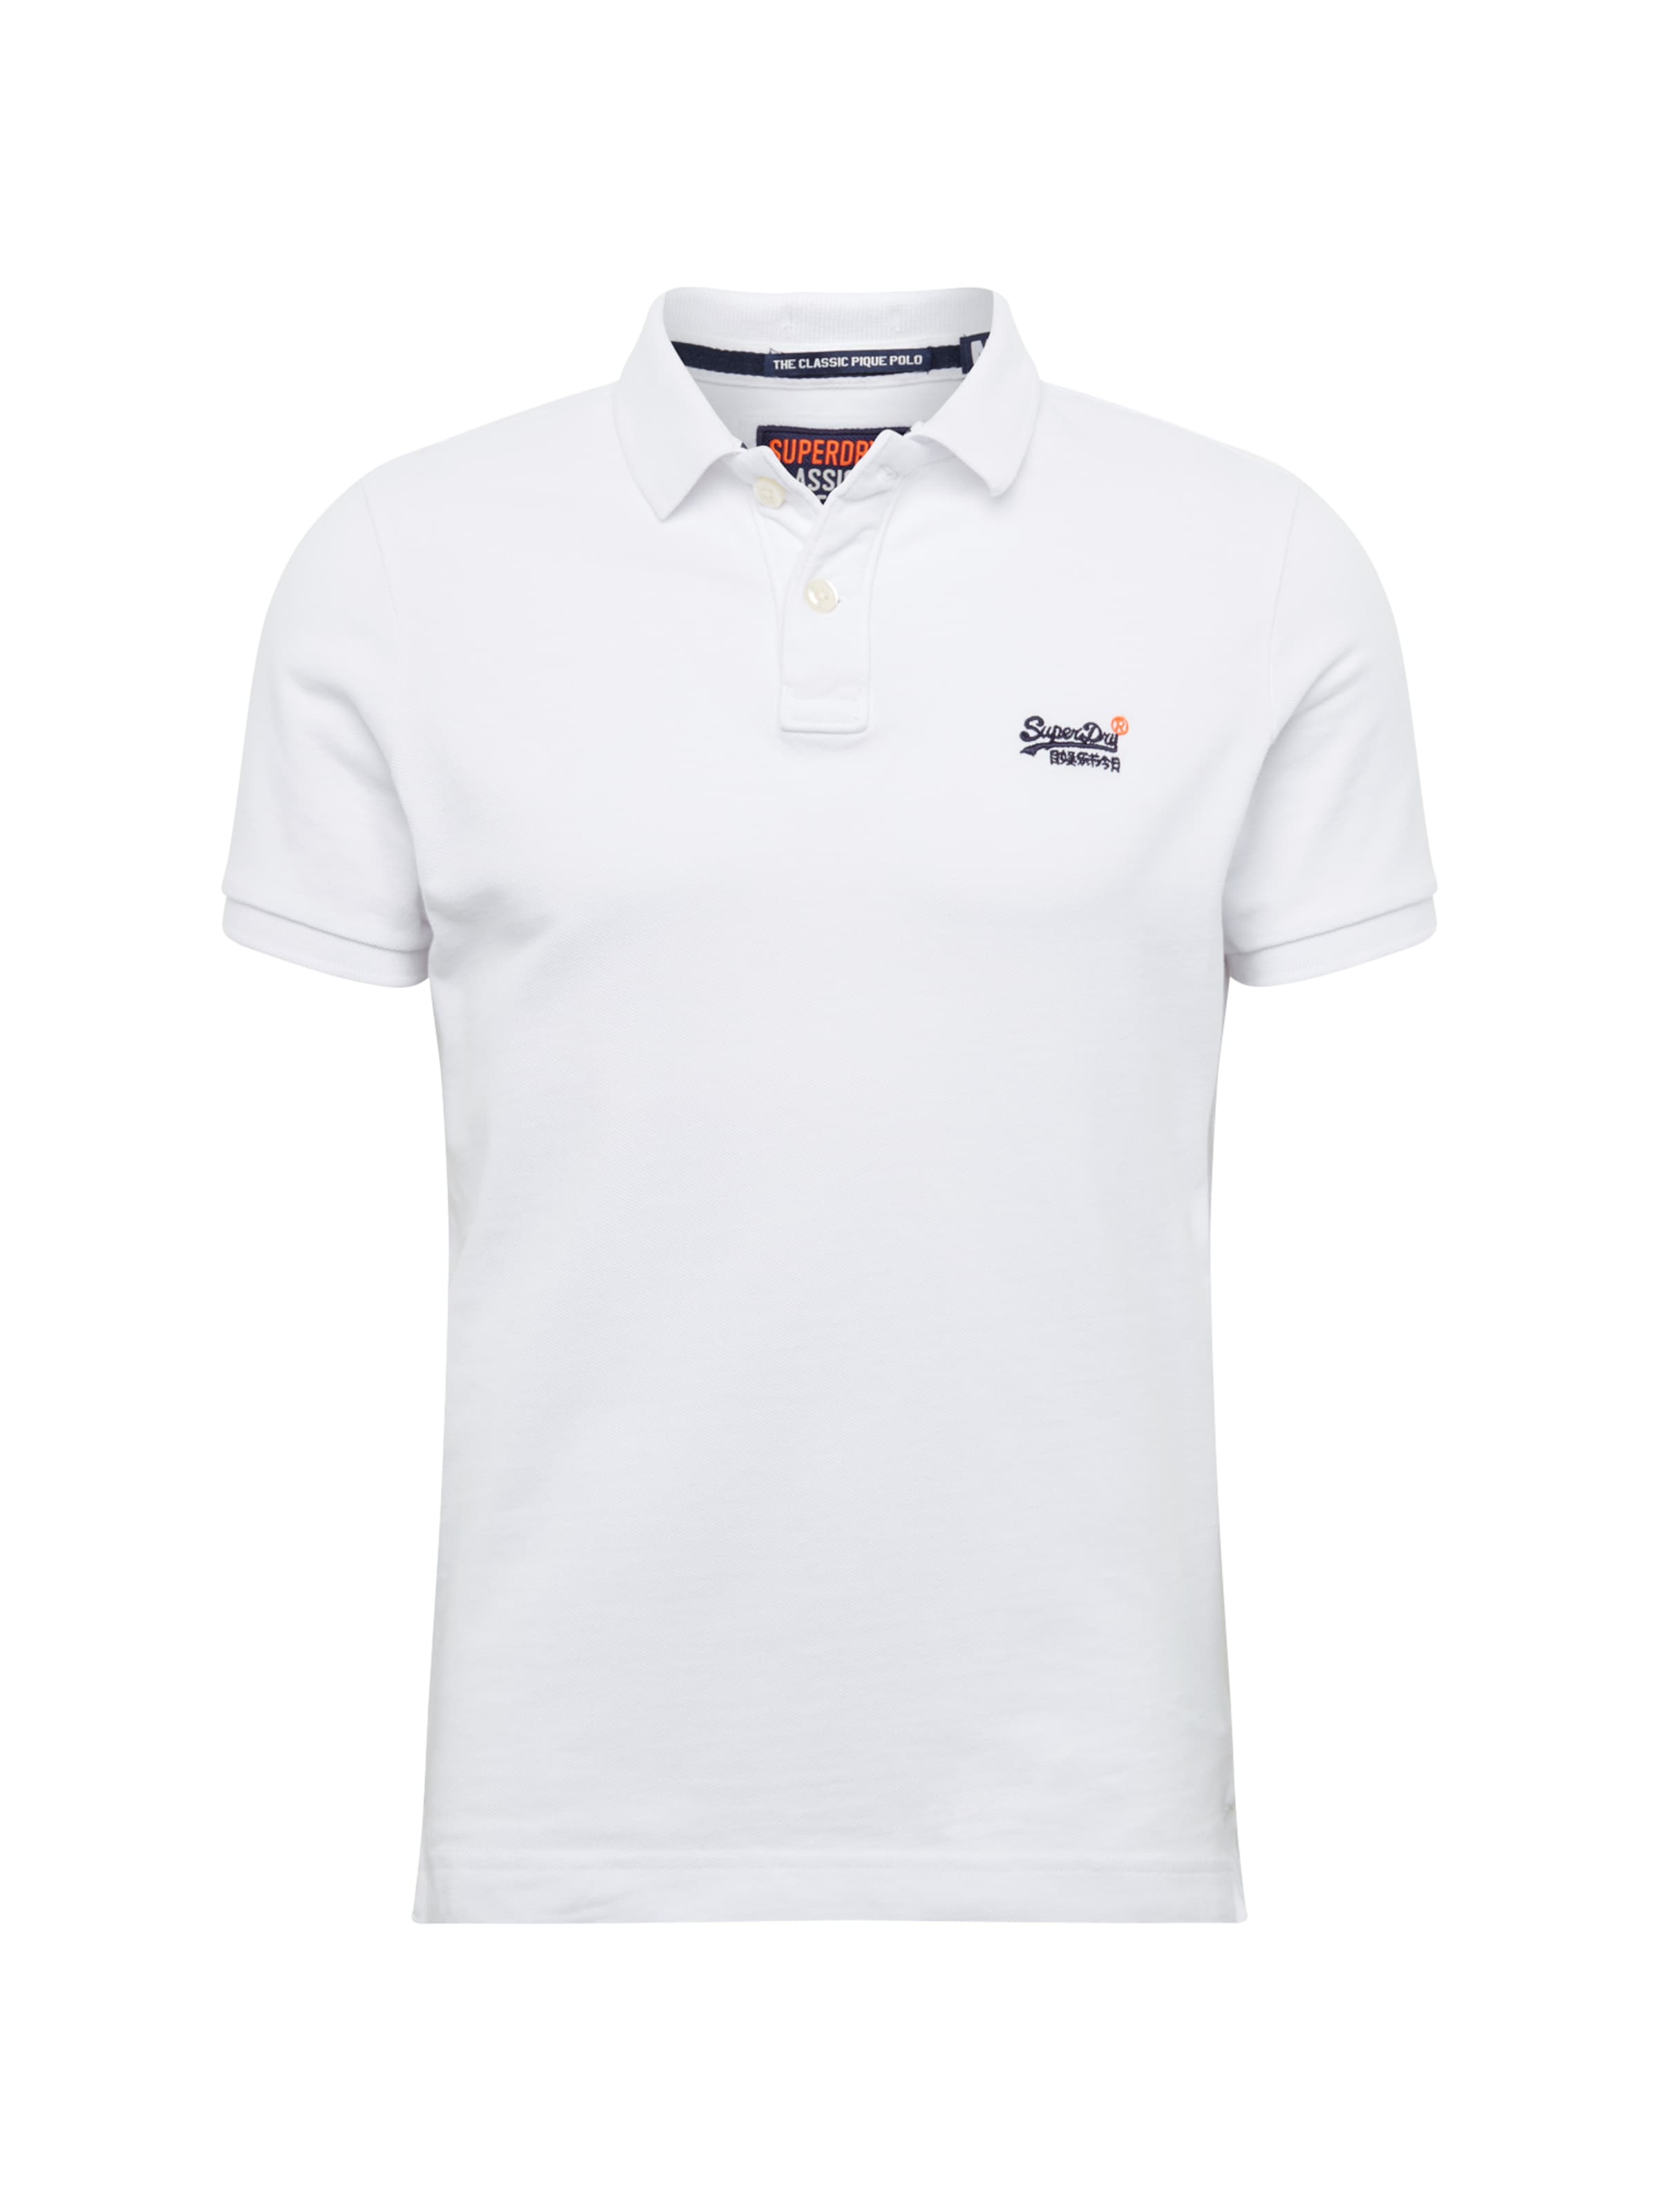 Shirt s Polo' Weiß Superdry 'classic S In Pique wZilXPkTOu